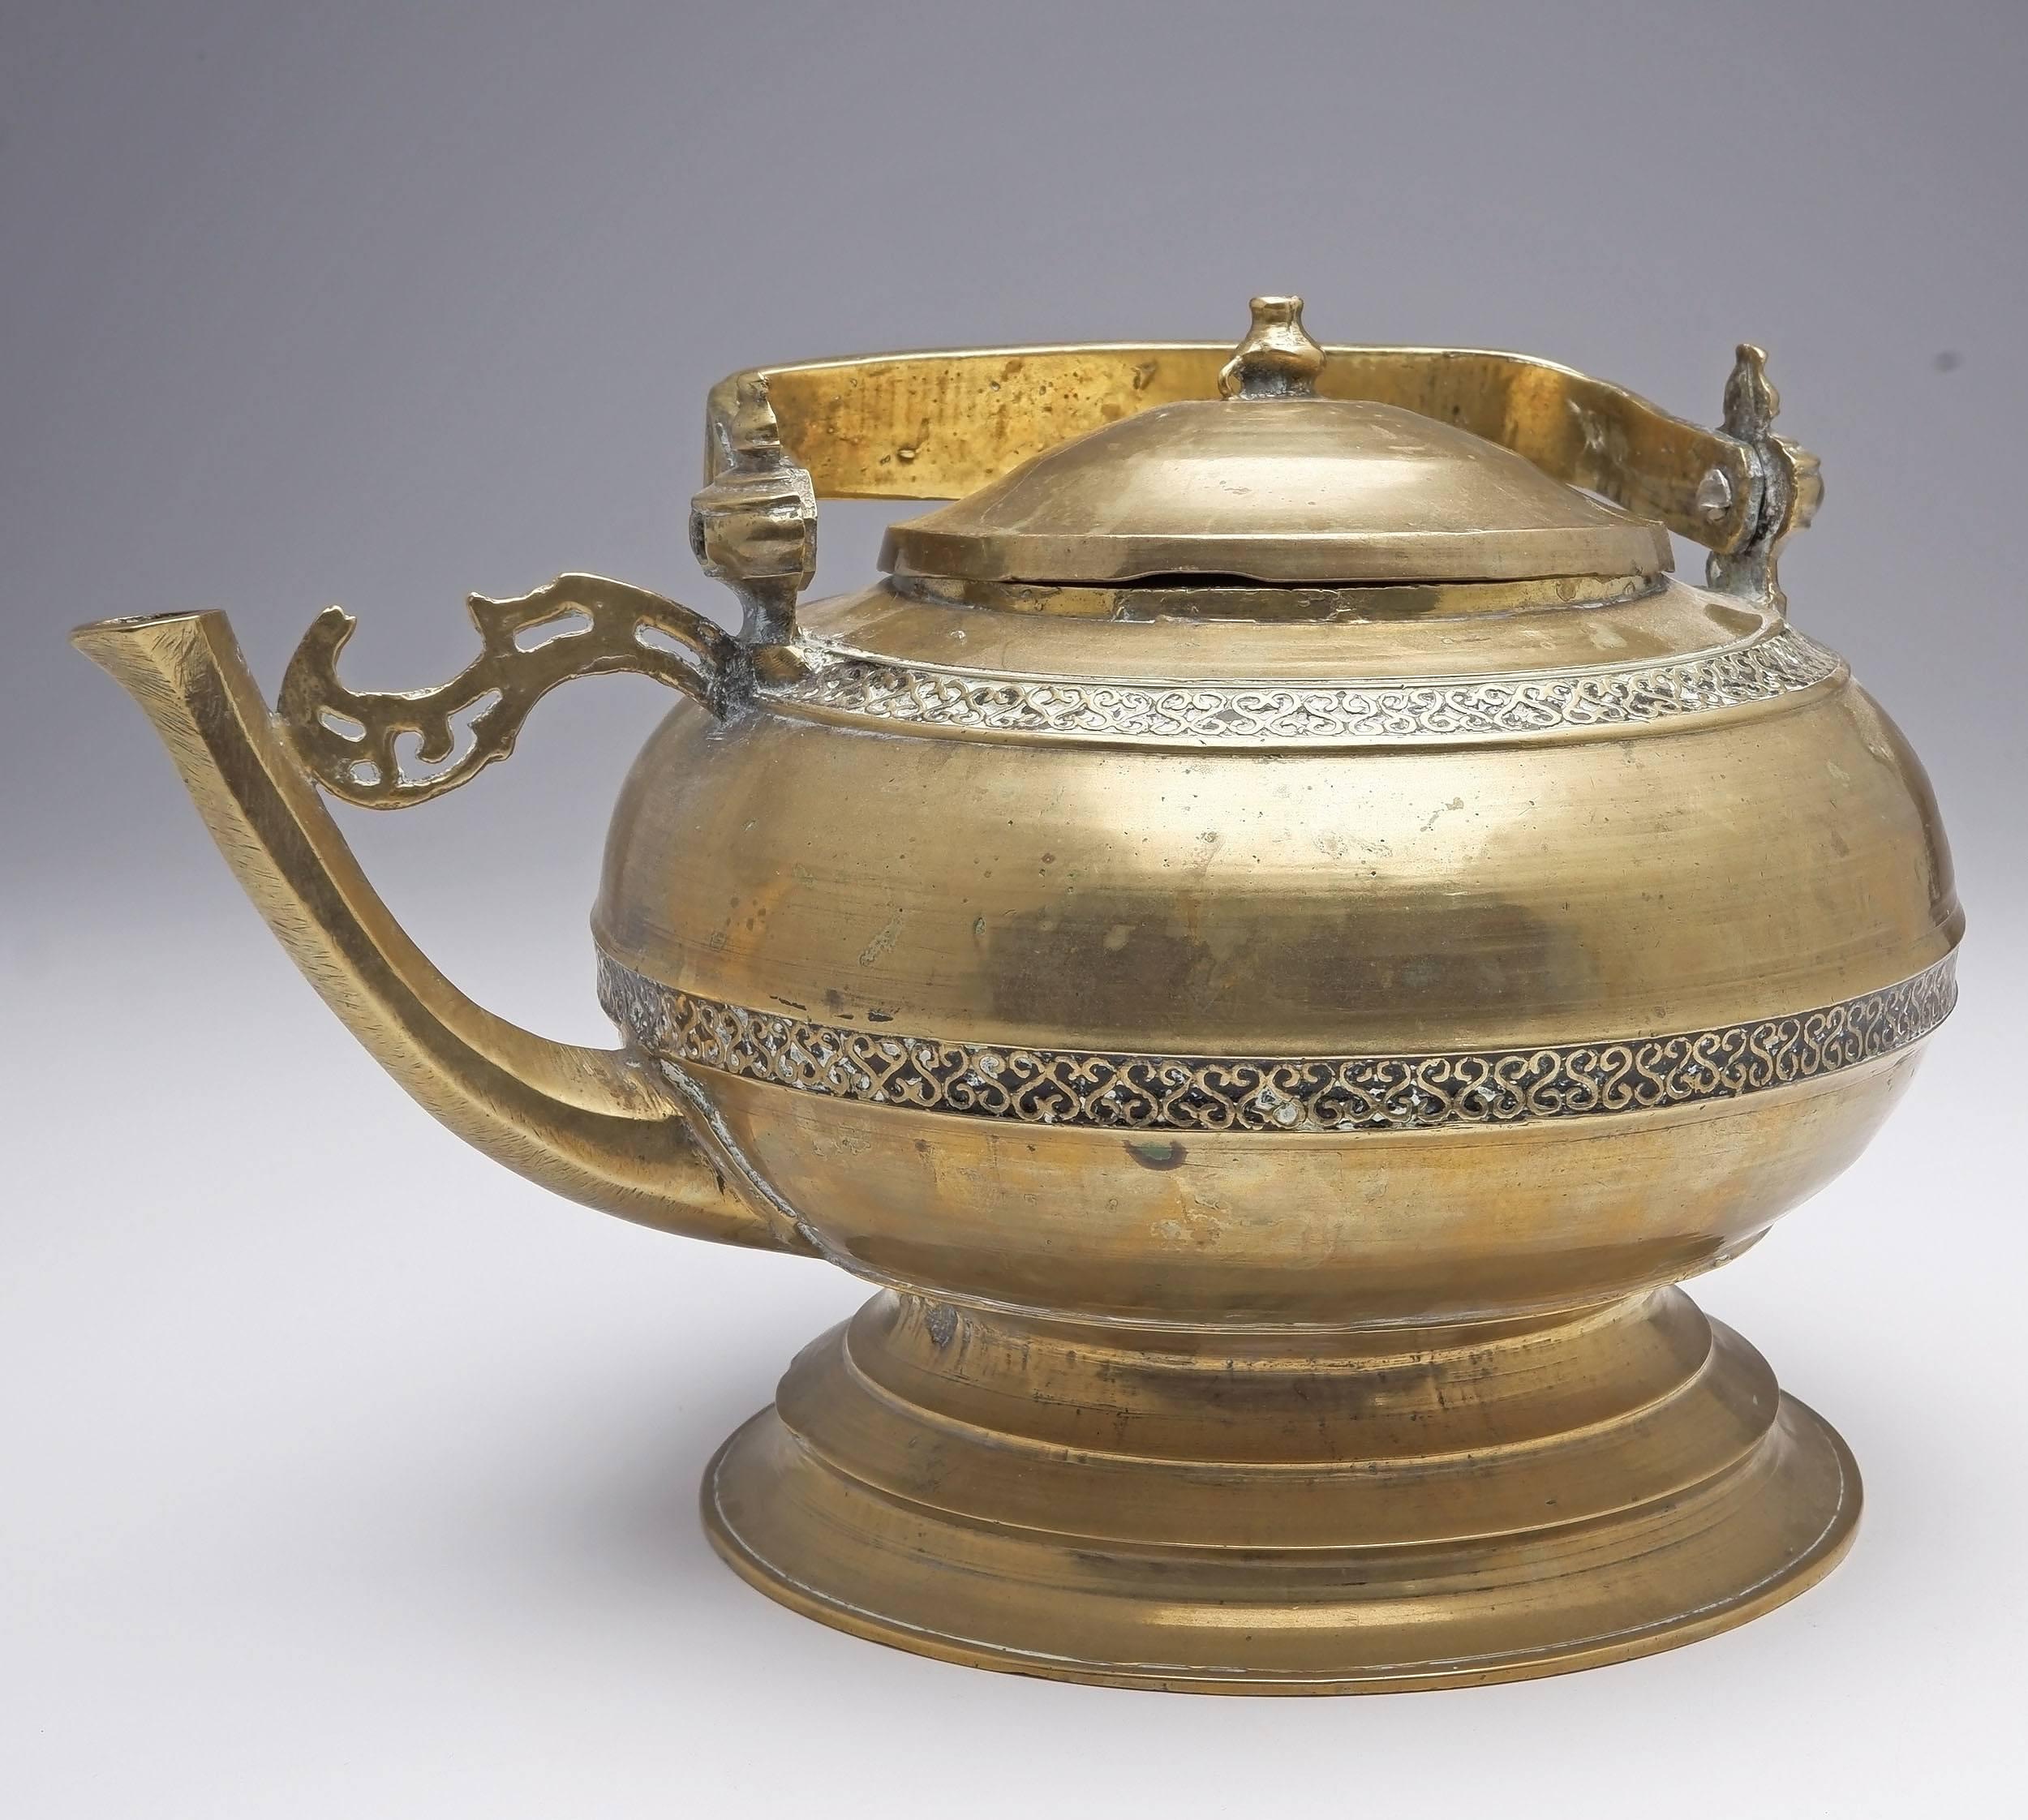 'Antique Malay Indigenous Cast Brass and Tar Inlaid Kettle, Probably Minangkabau People'